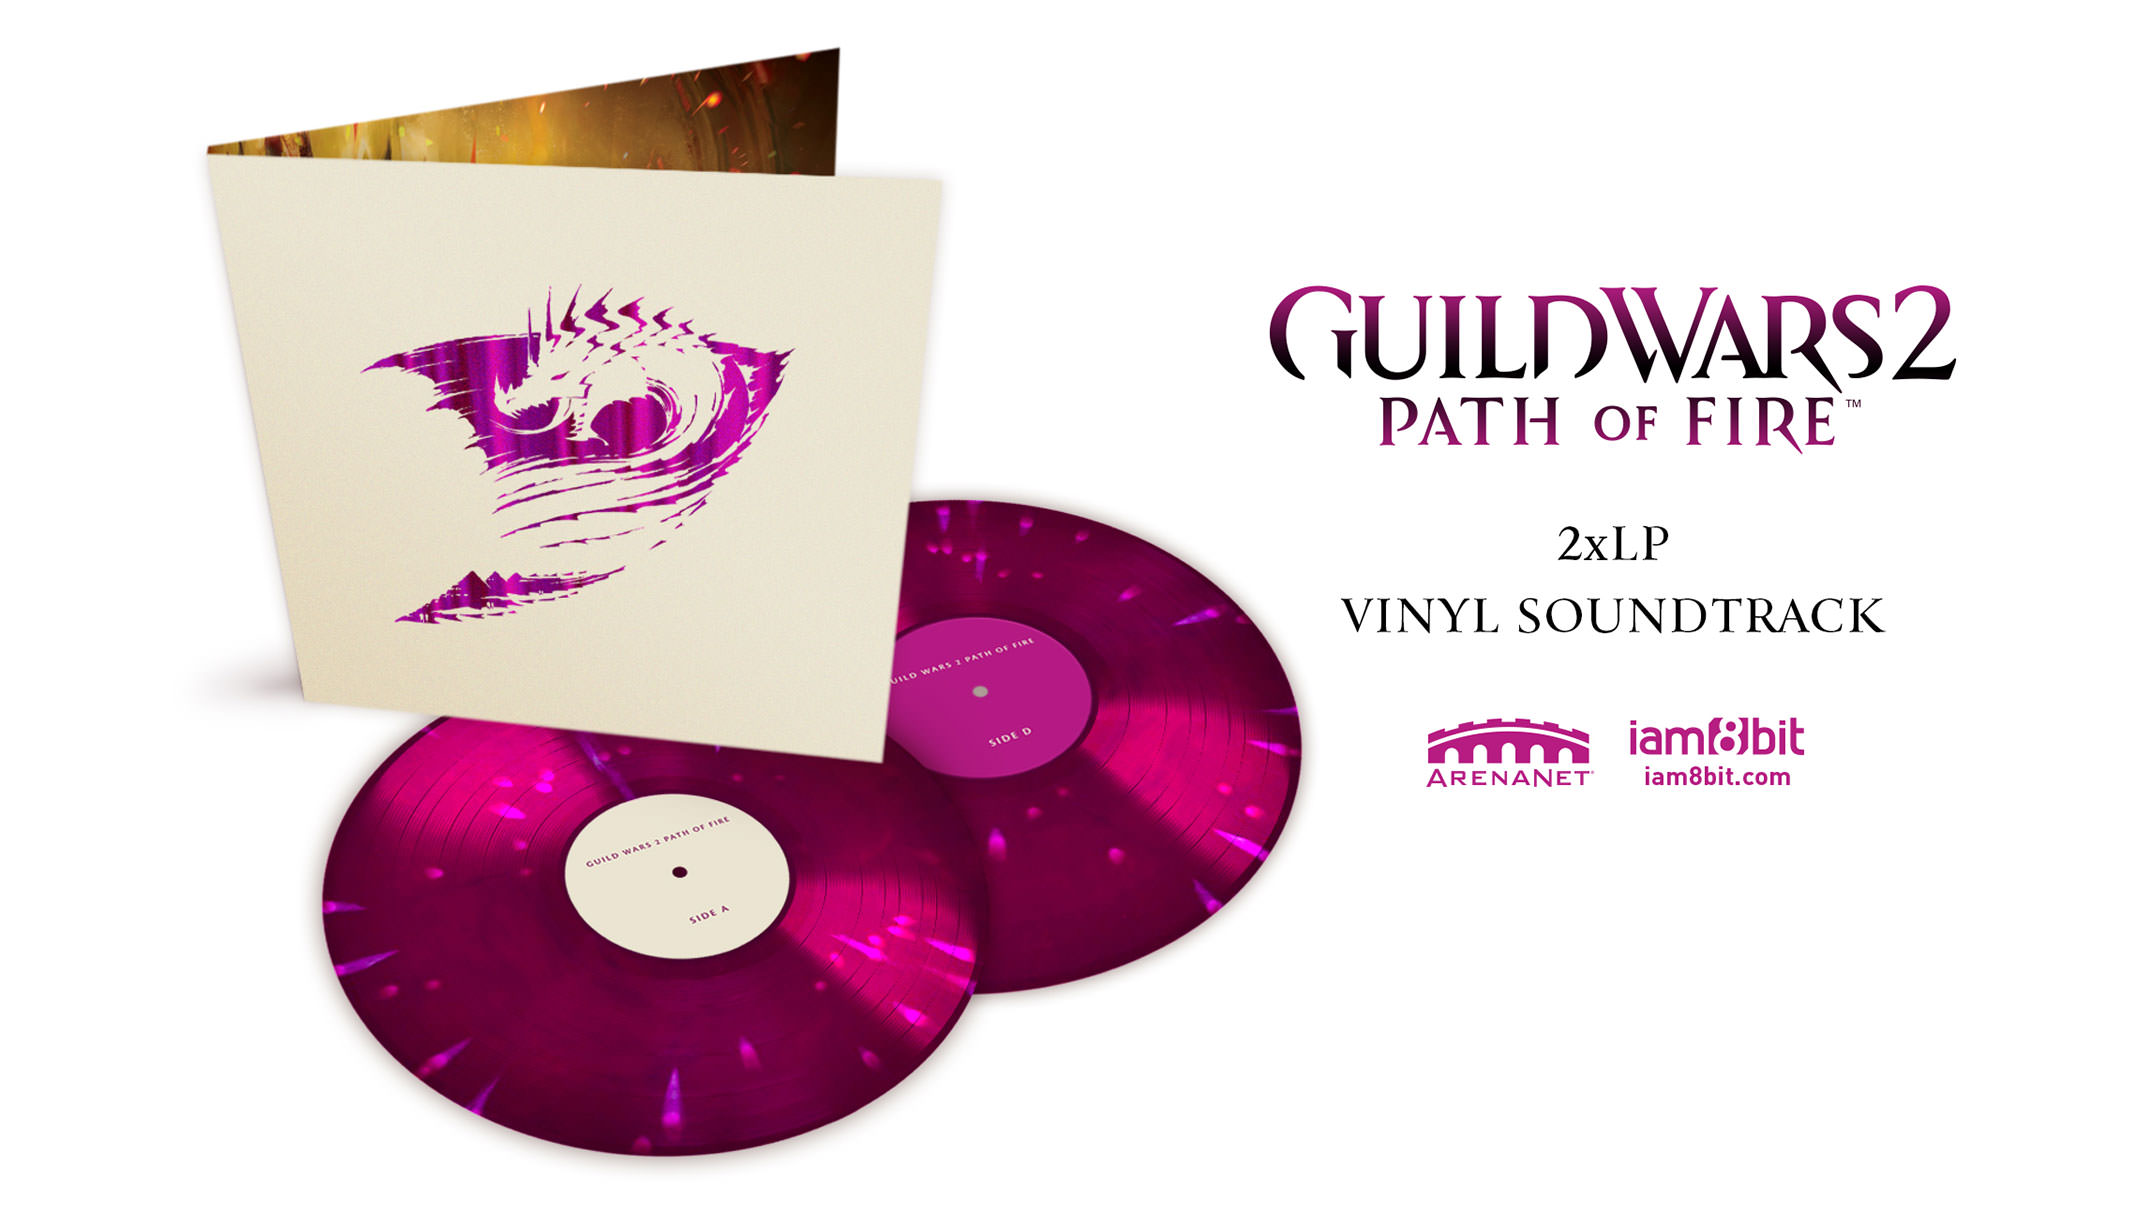 Vinyl Pre-Orders Open for Guild Wars 2: Path of Fire Orchestral Soundtrack